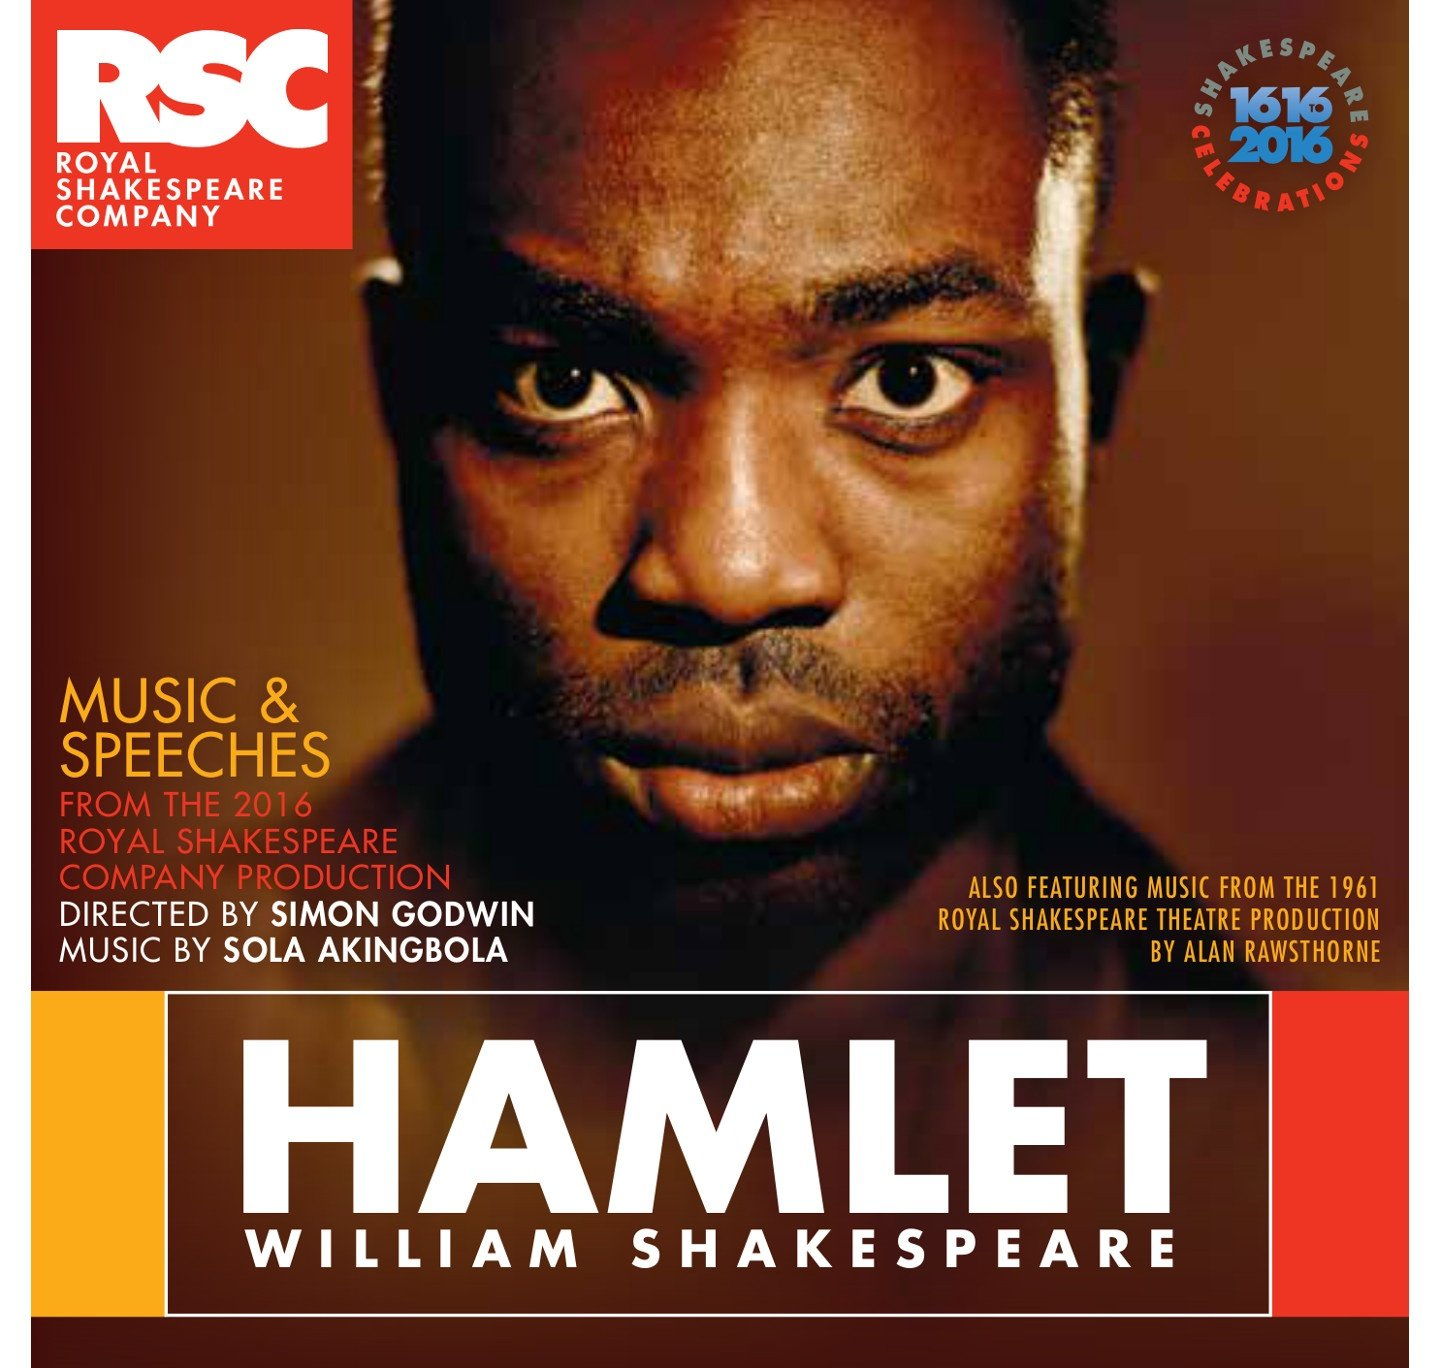 https://0201.nccdn.net/1_2/000/000/135/c32/62345-hamlet-music--speeches-cd-2016-normal-1440x1368.jpg